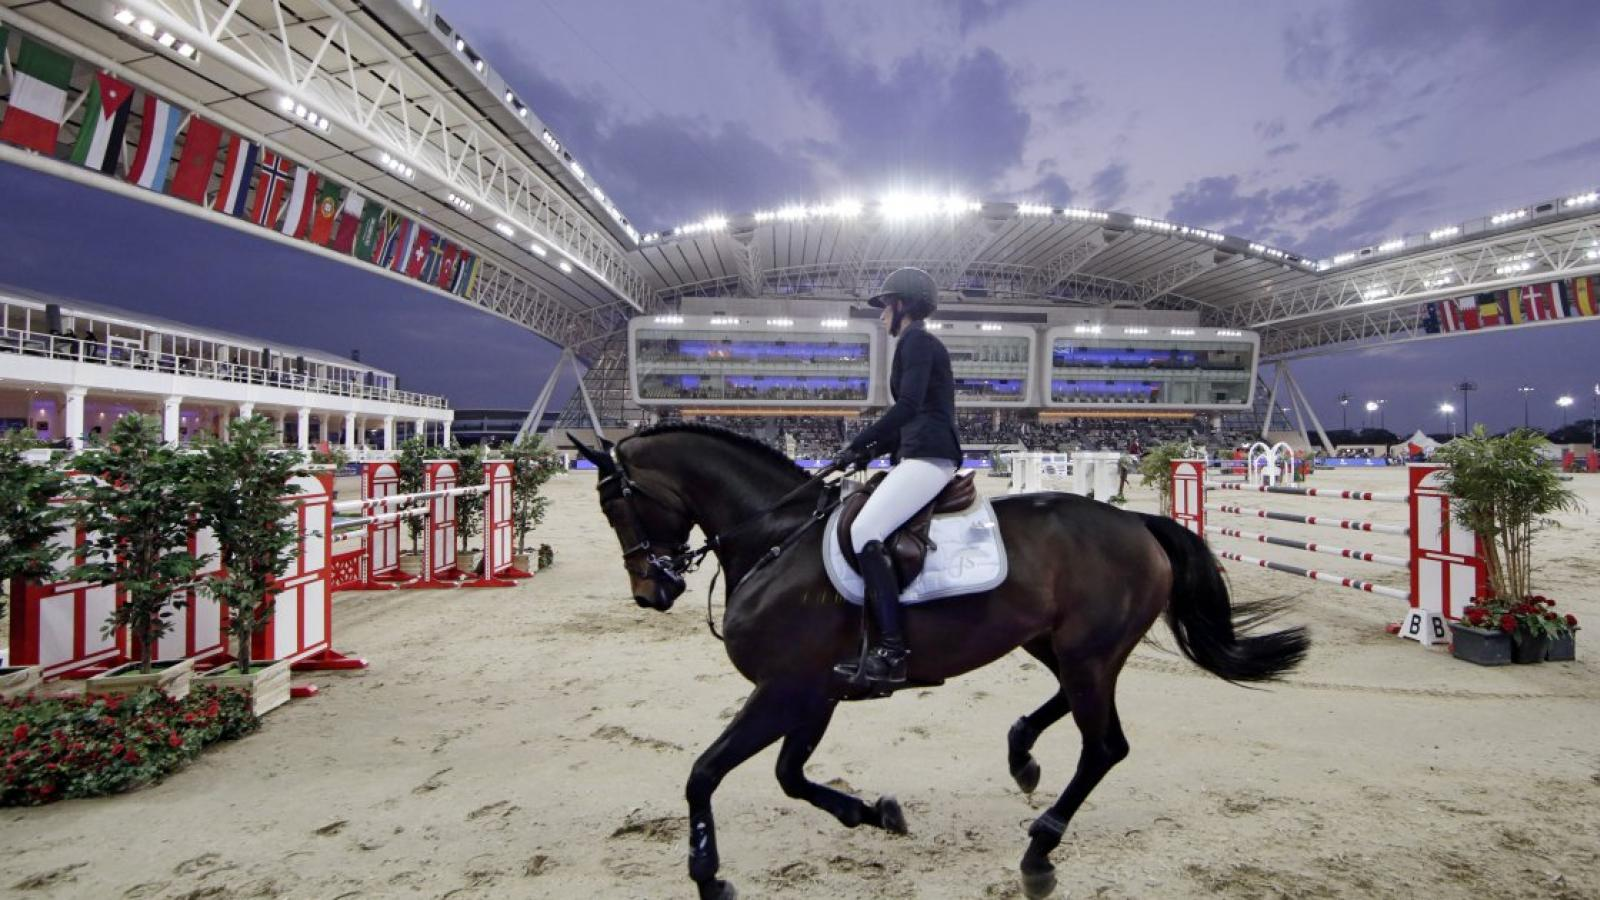 Qatar Foundation's Al Shaqab to host two world-class equestrian events on the trot